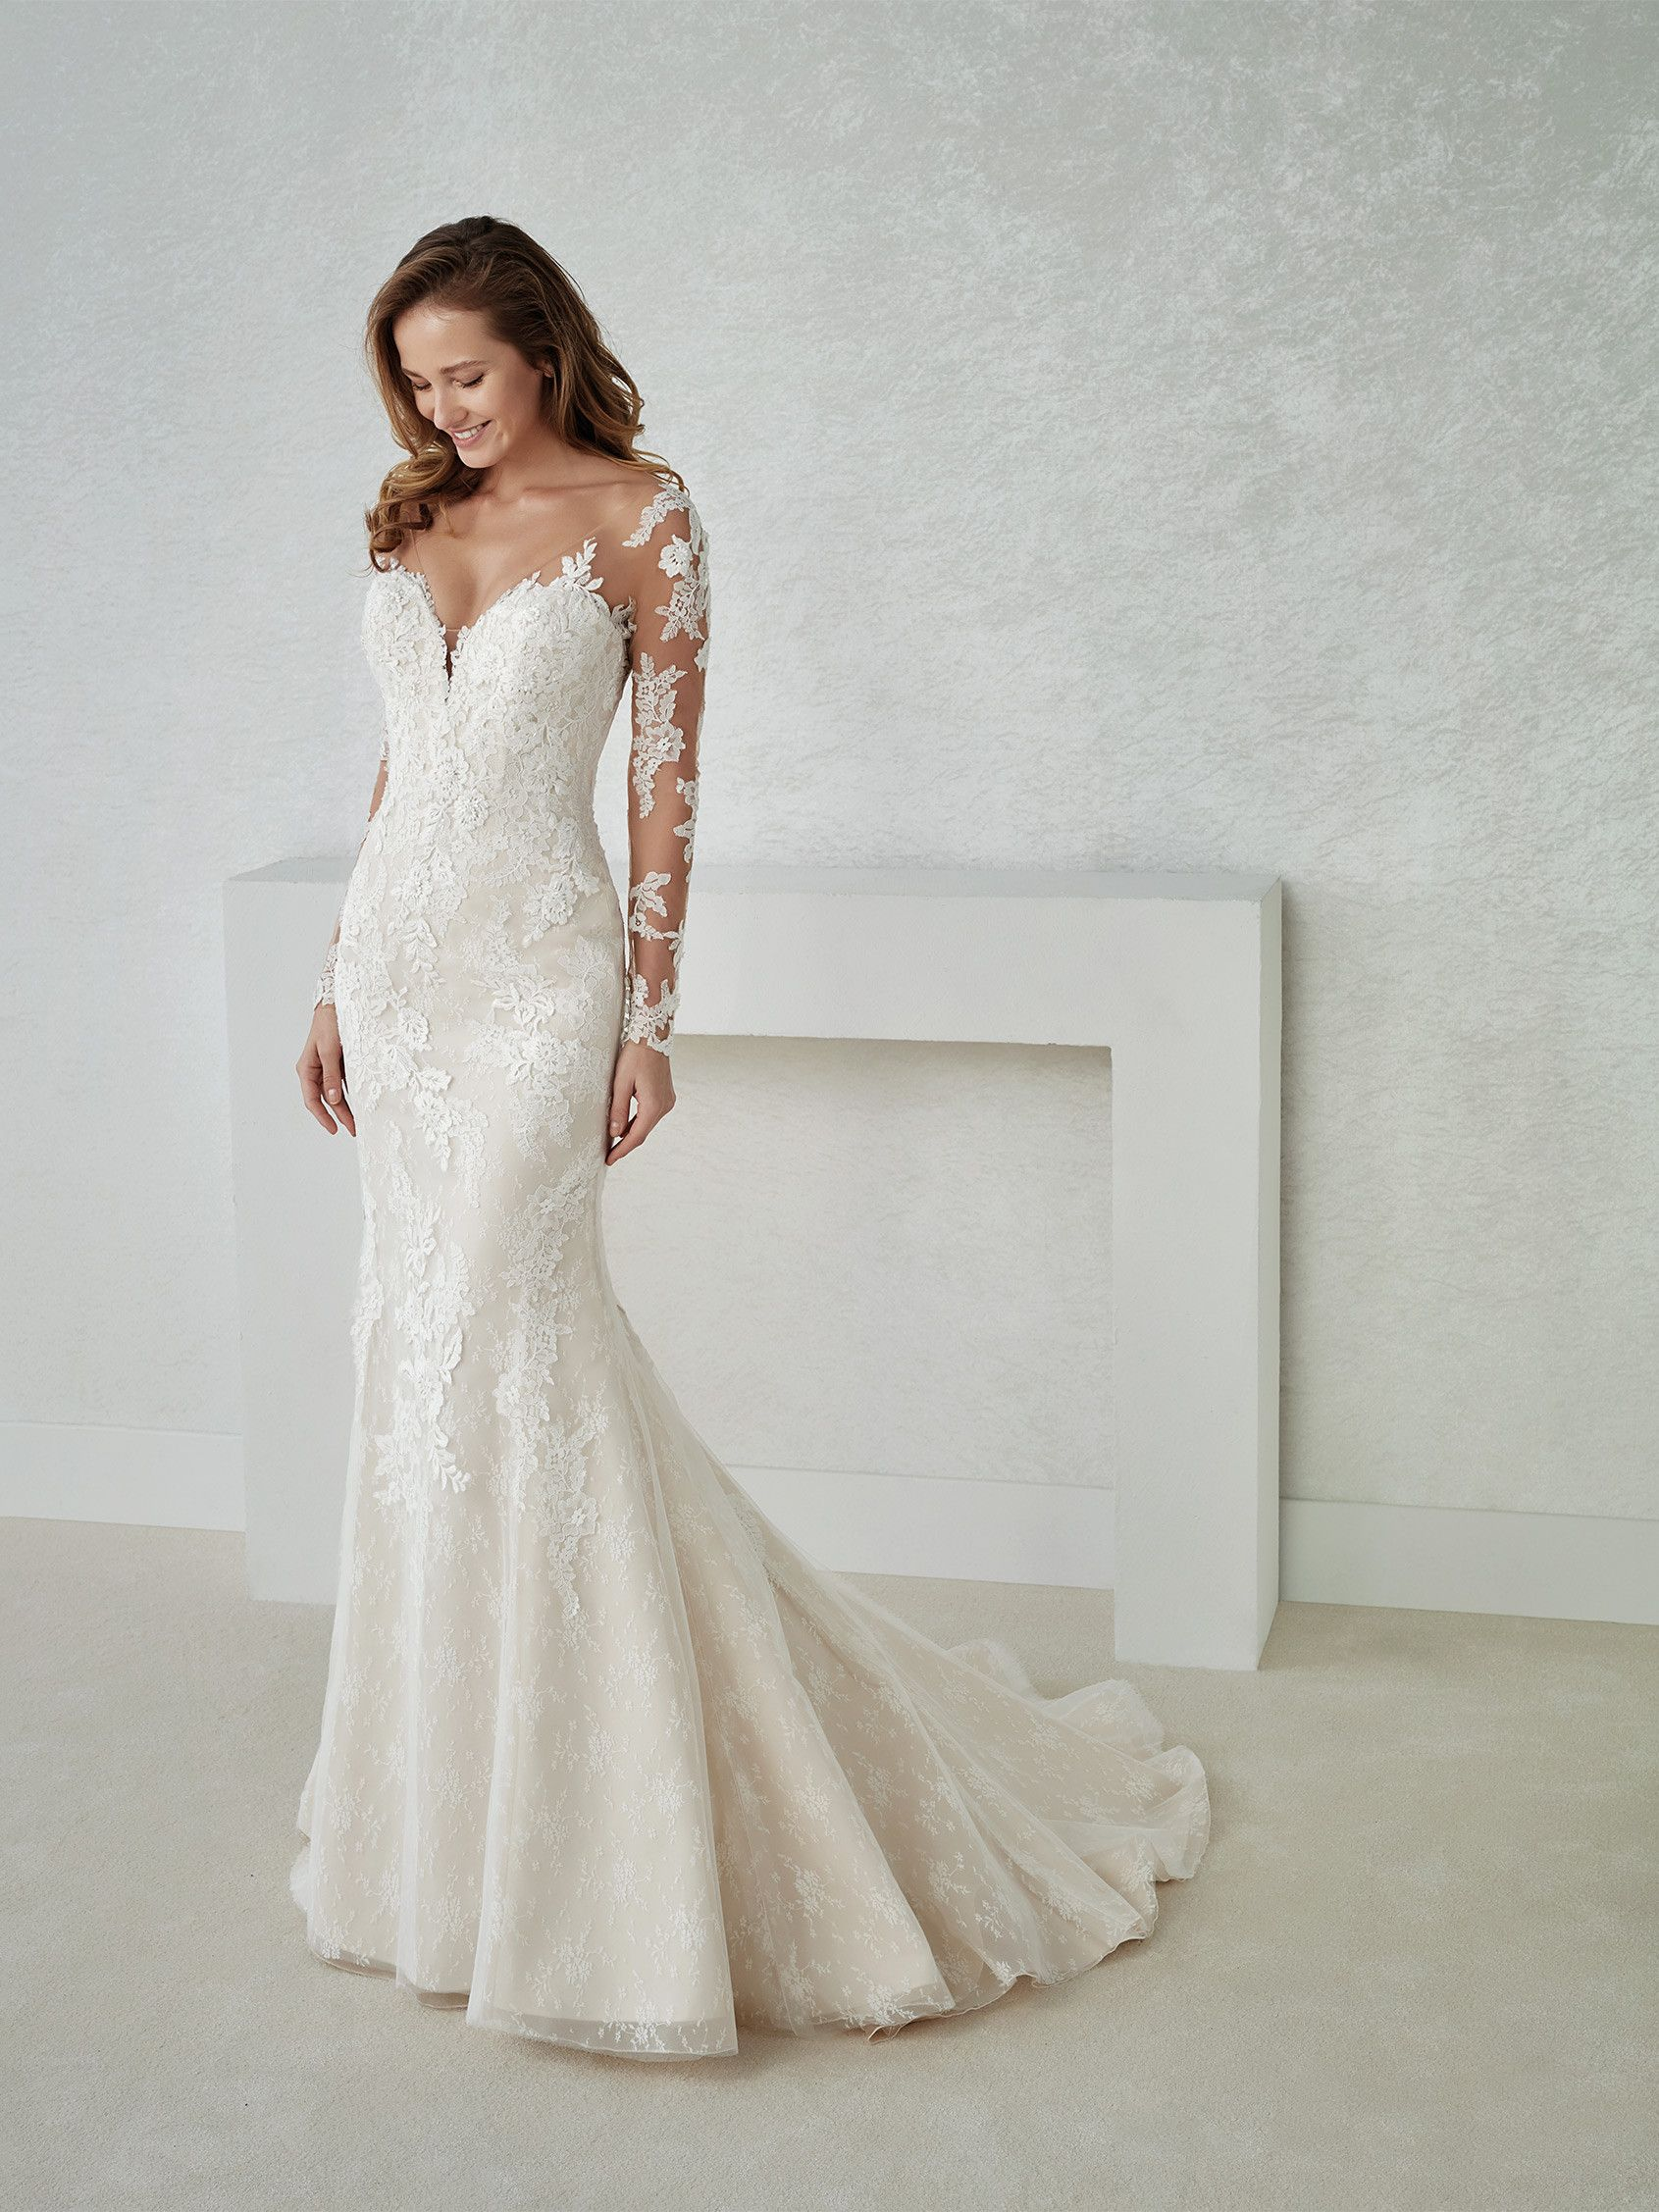 Sensual low waist mermaid wedding dress in lace and embroidered ...